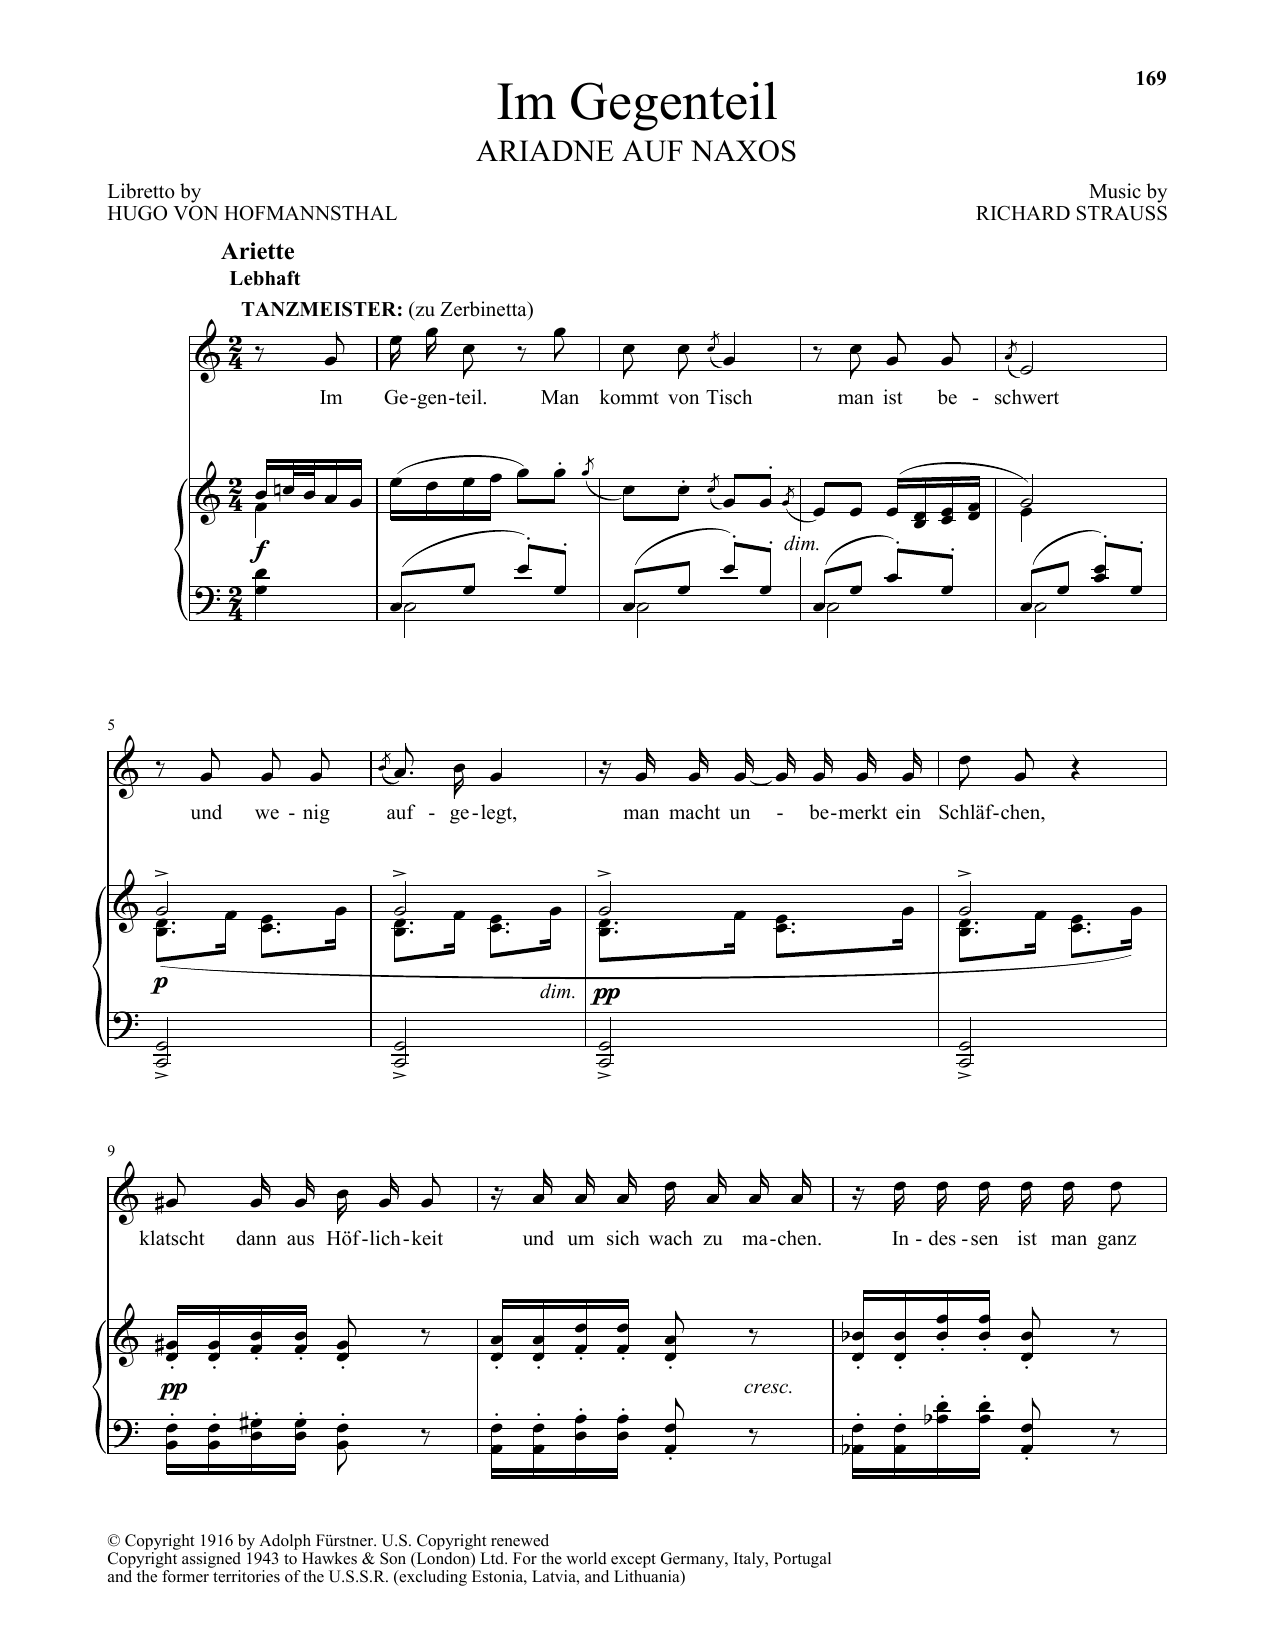 Richard Strauss Im Gegenteil sheet music preview music notes and score for Piano & Vocal including 3 page(s)